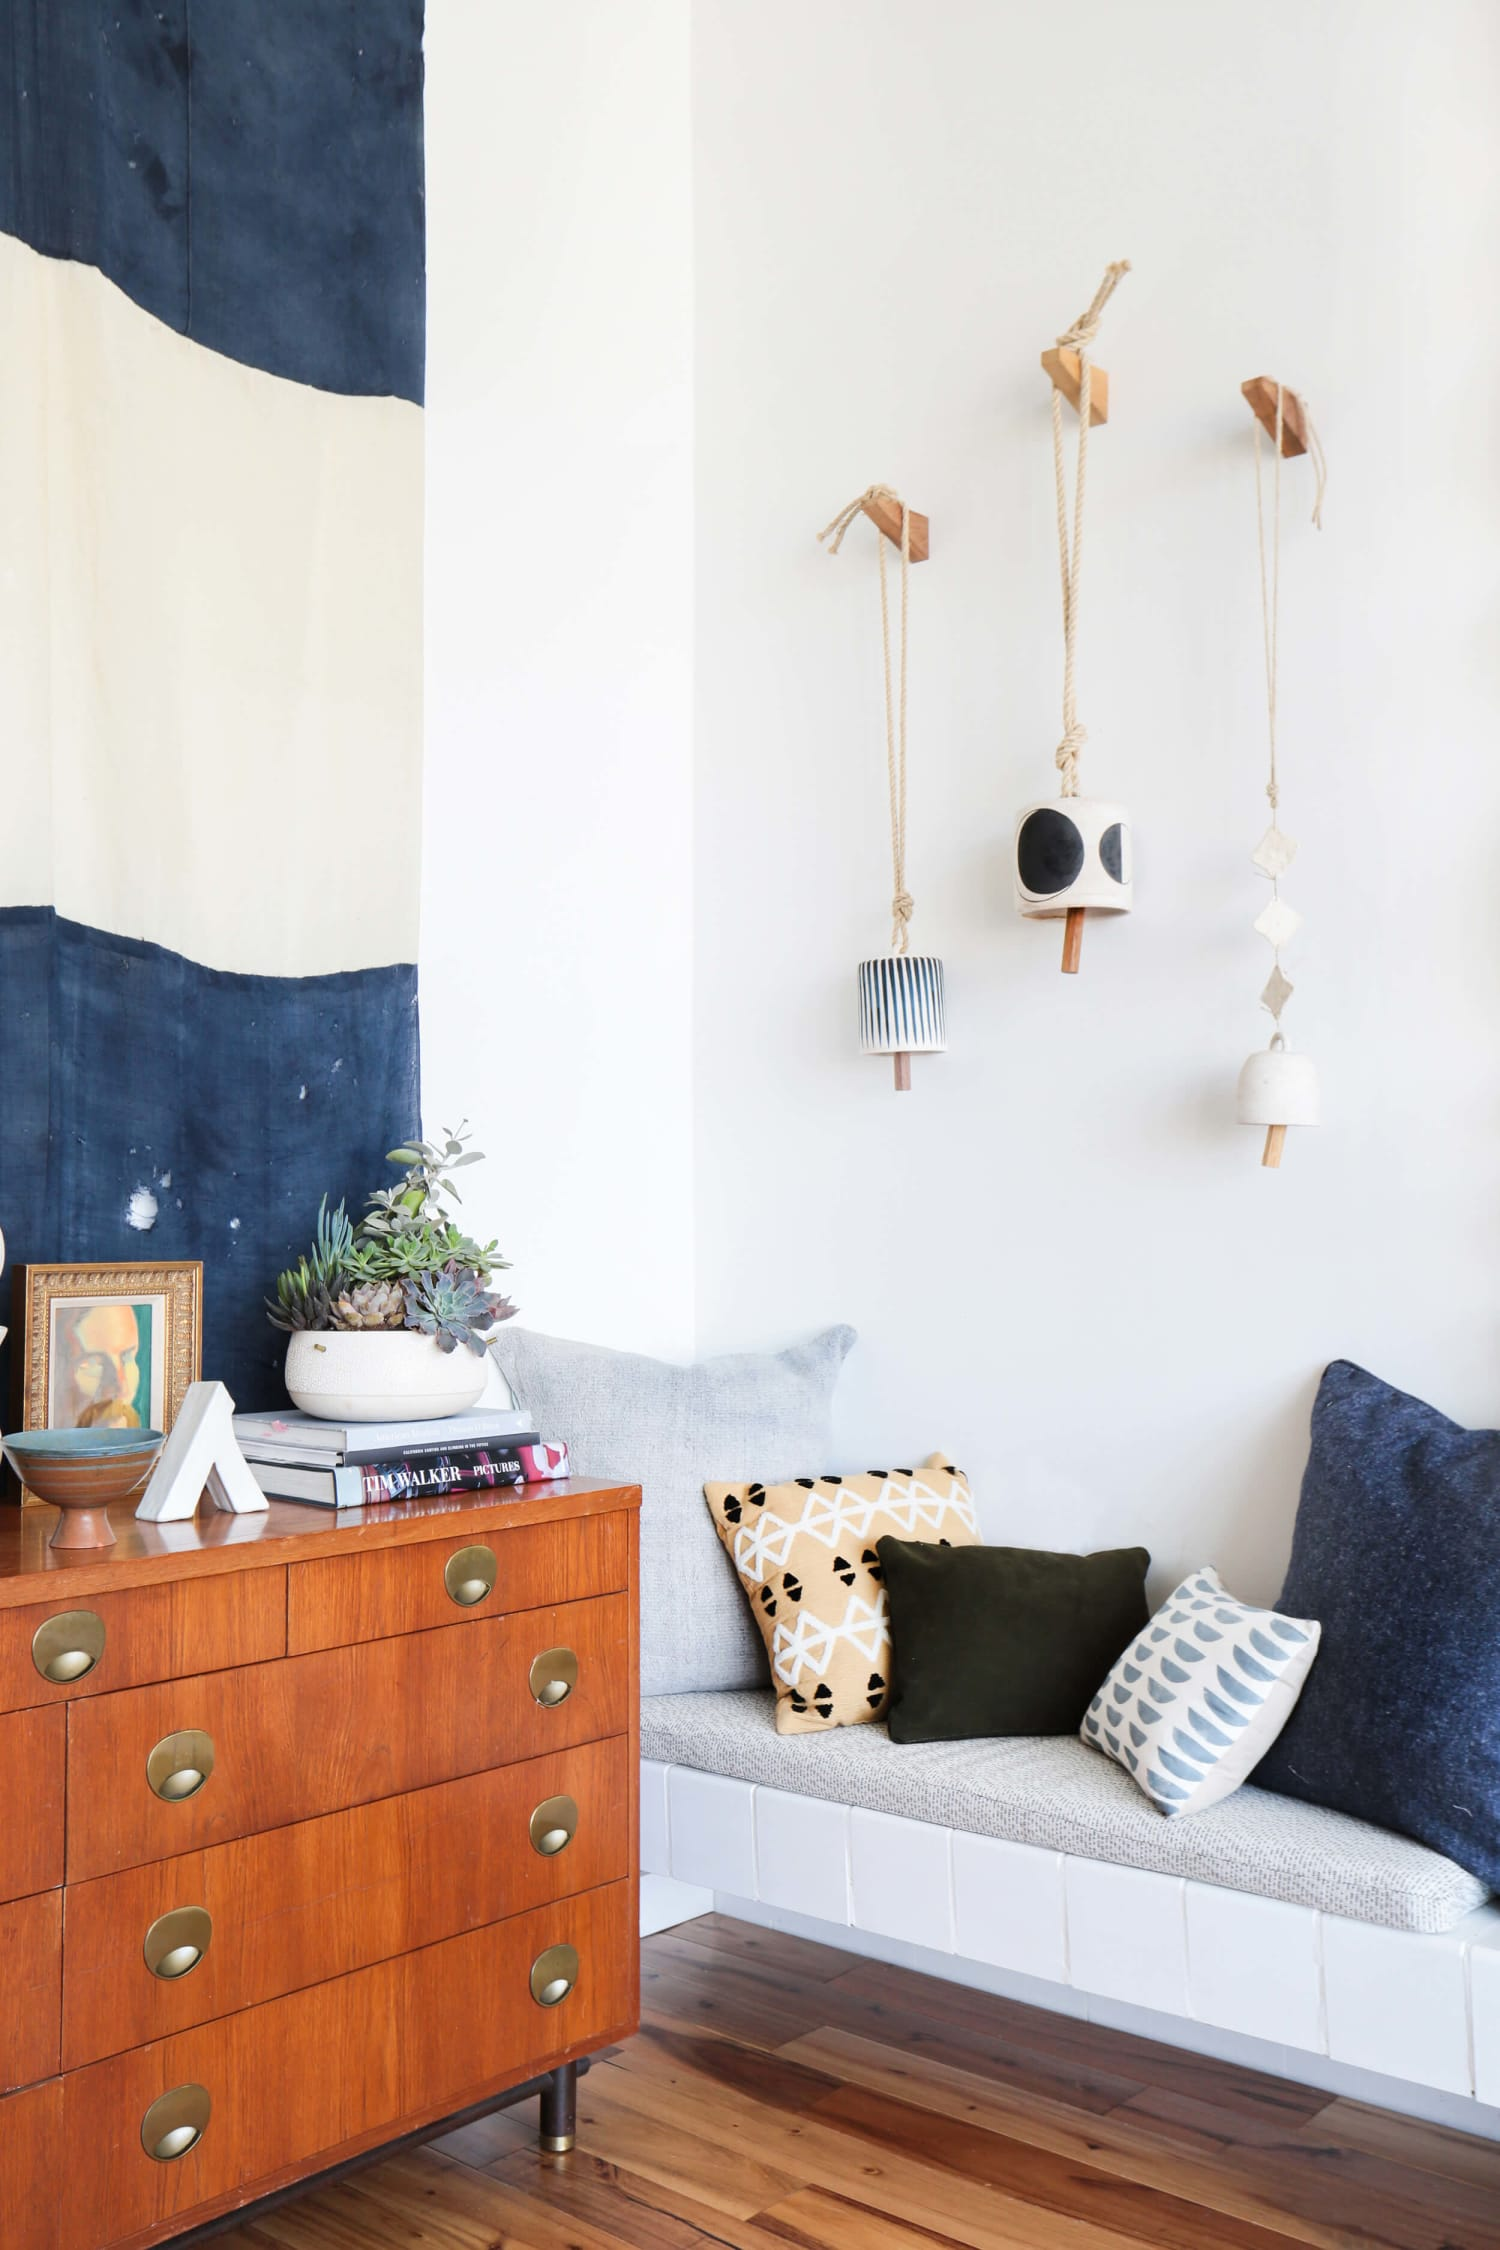 Meet Ceramic Bells: 2020's Answer to Last Year's Woven Wall Hanging Trend